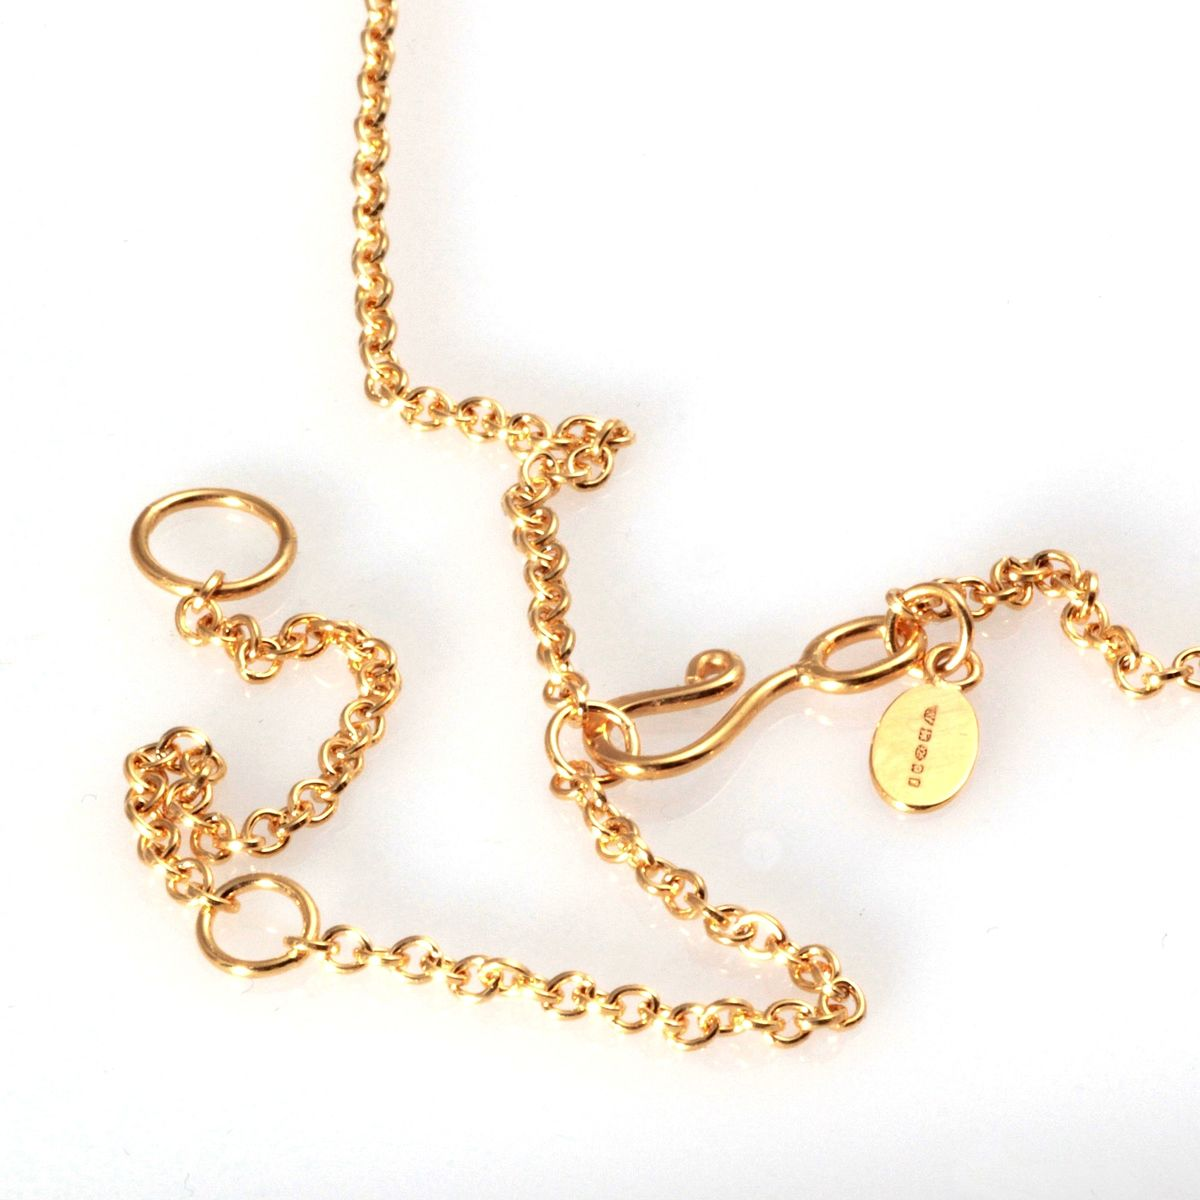 Gold Vermeil Screwcap Pendant on Chain - product images  of